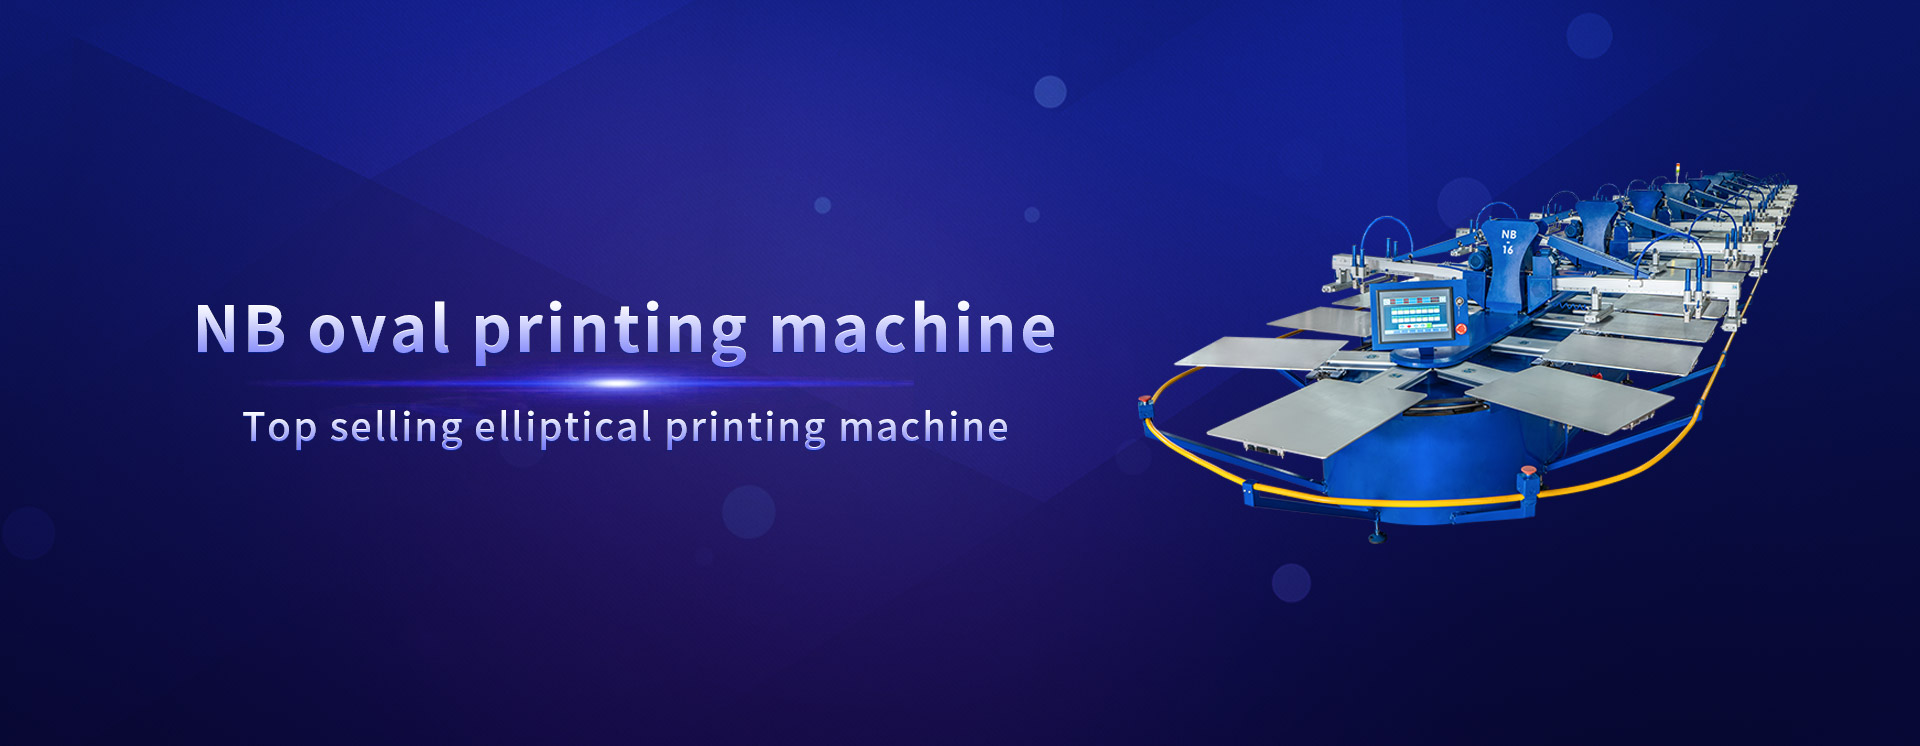 NB oval printing machine